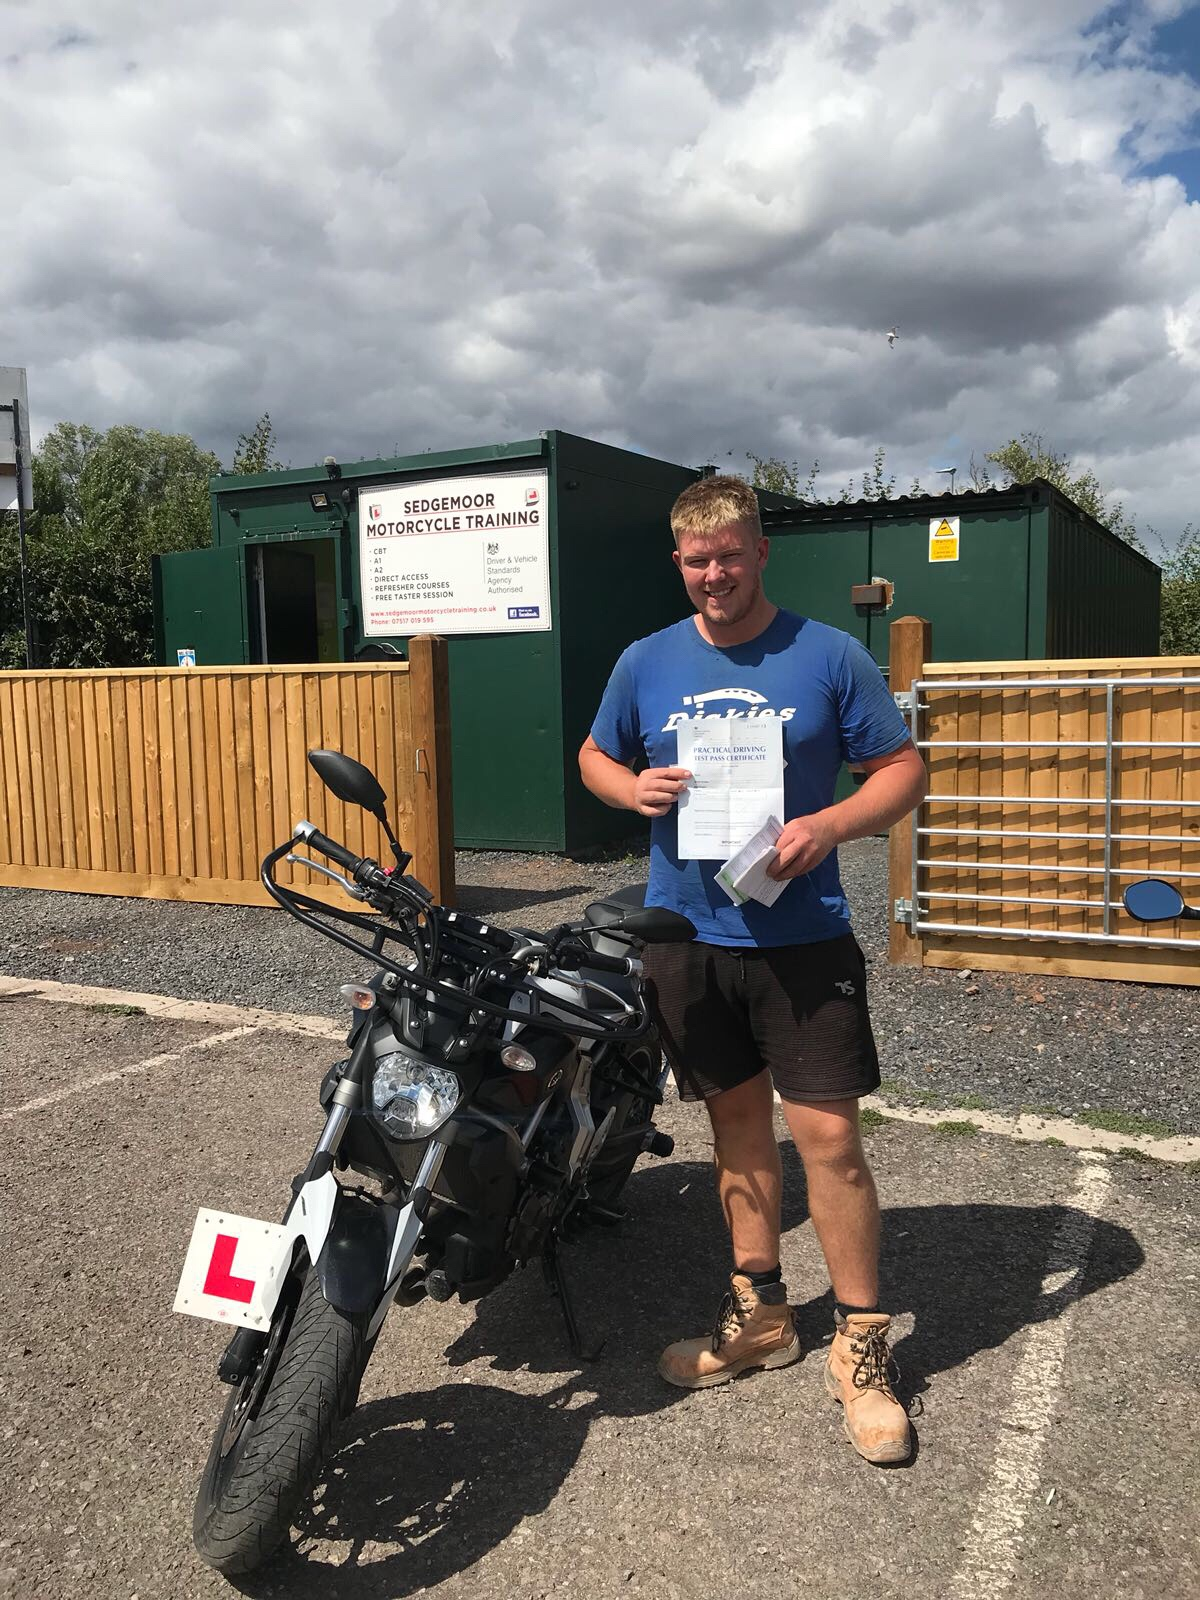 CBT and DAS success at our motorcycle training centre in bridgwater, somerset